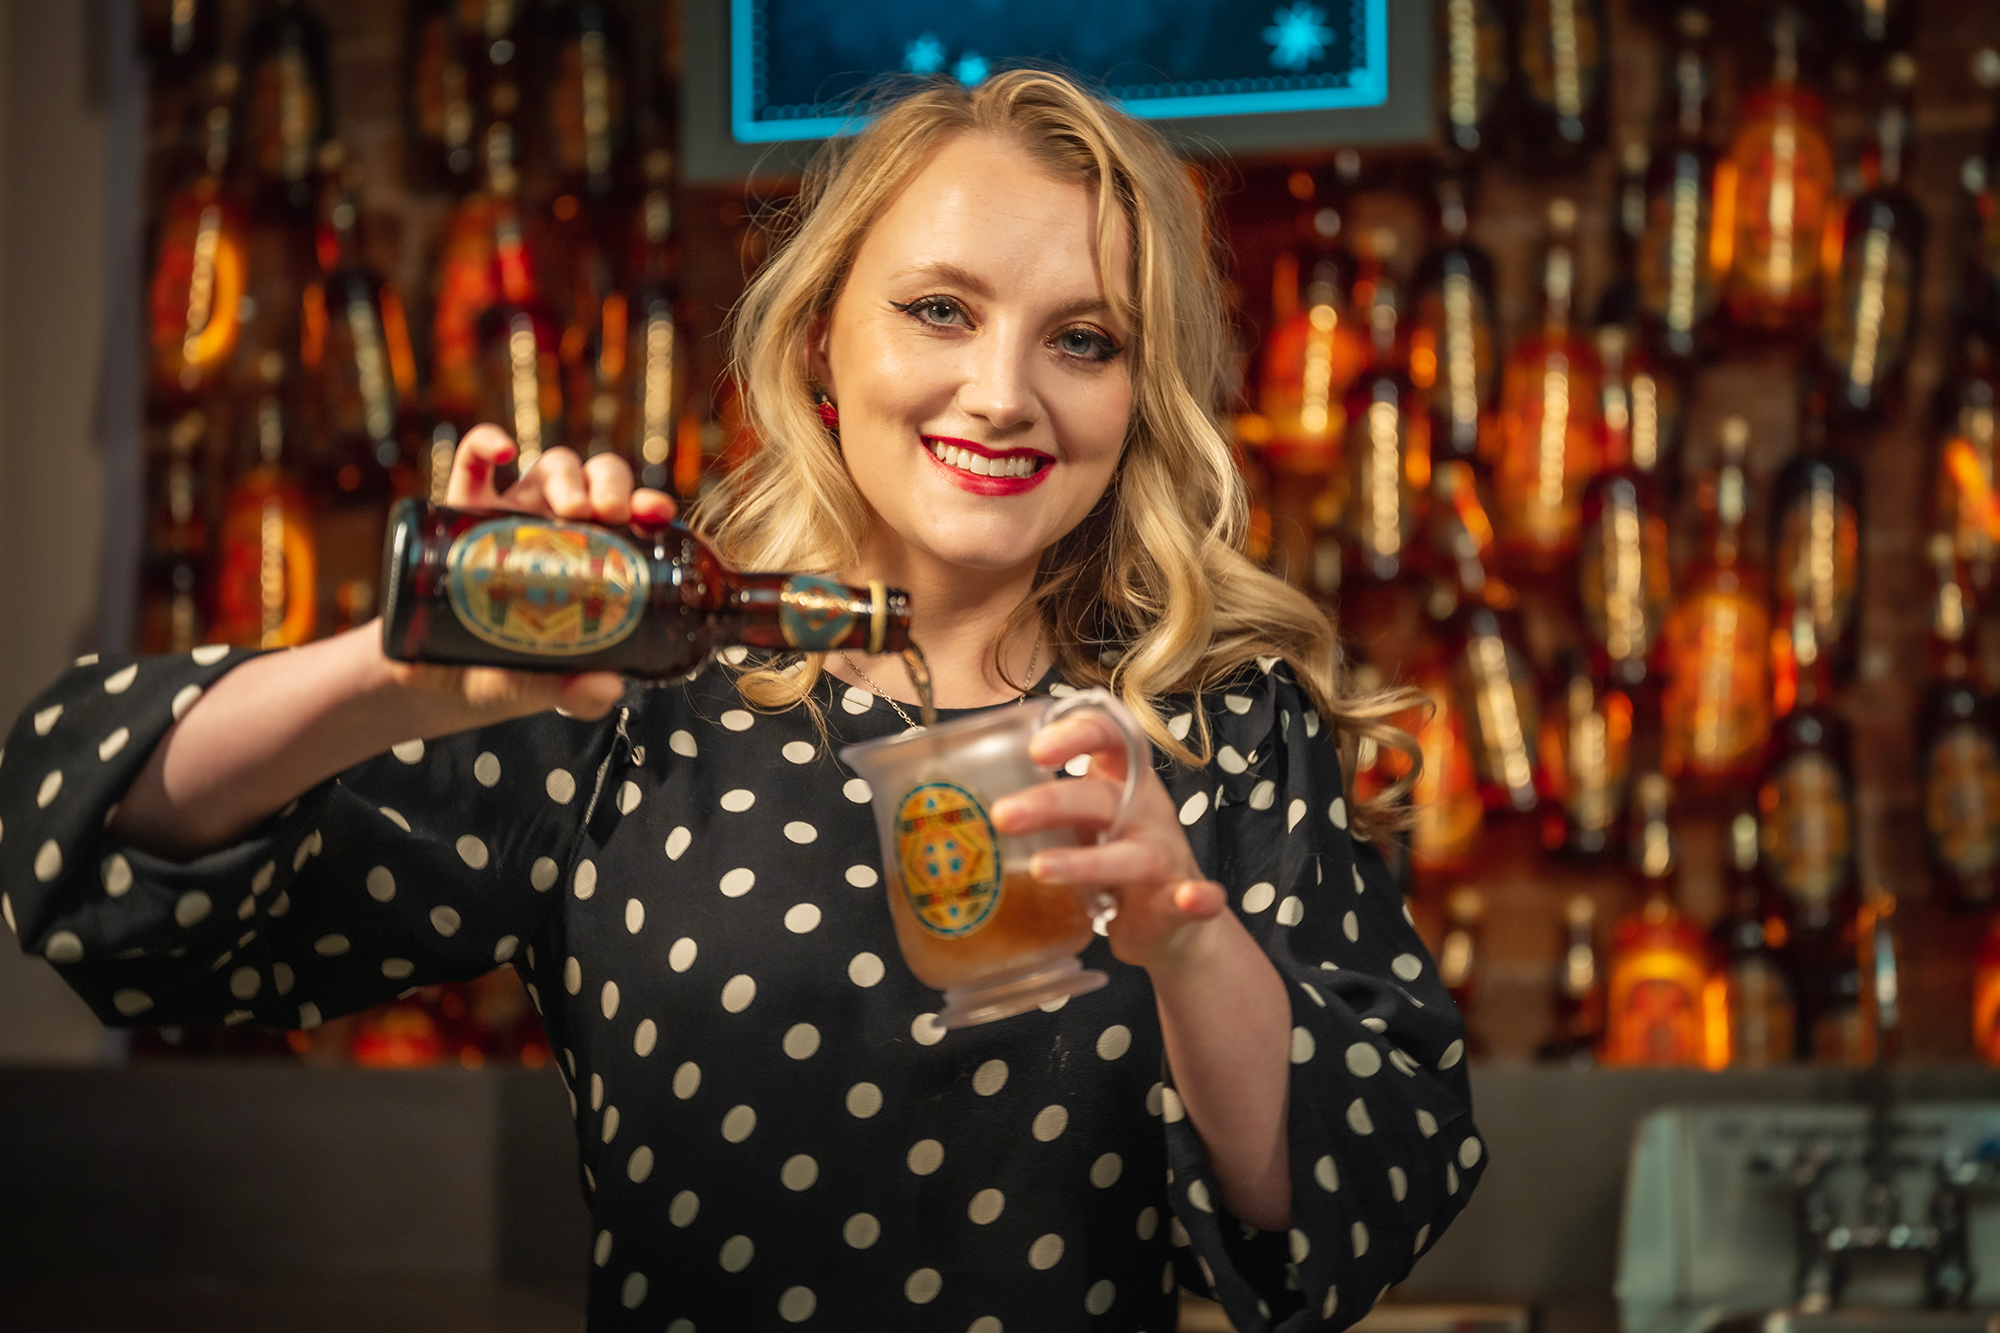 Harry Potter's Evanna Lynch (a.k.a. Luna Lovegood) Previews N.Y.C.'s Upcoming Potter-Themed Store